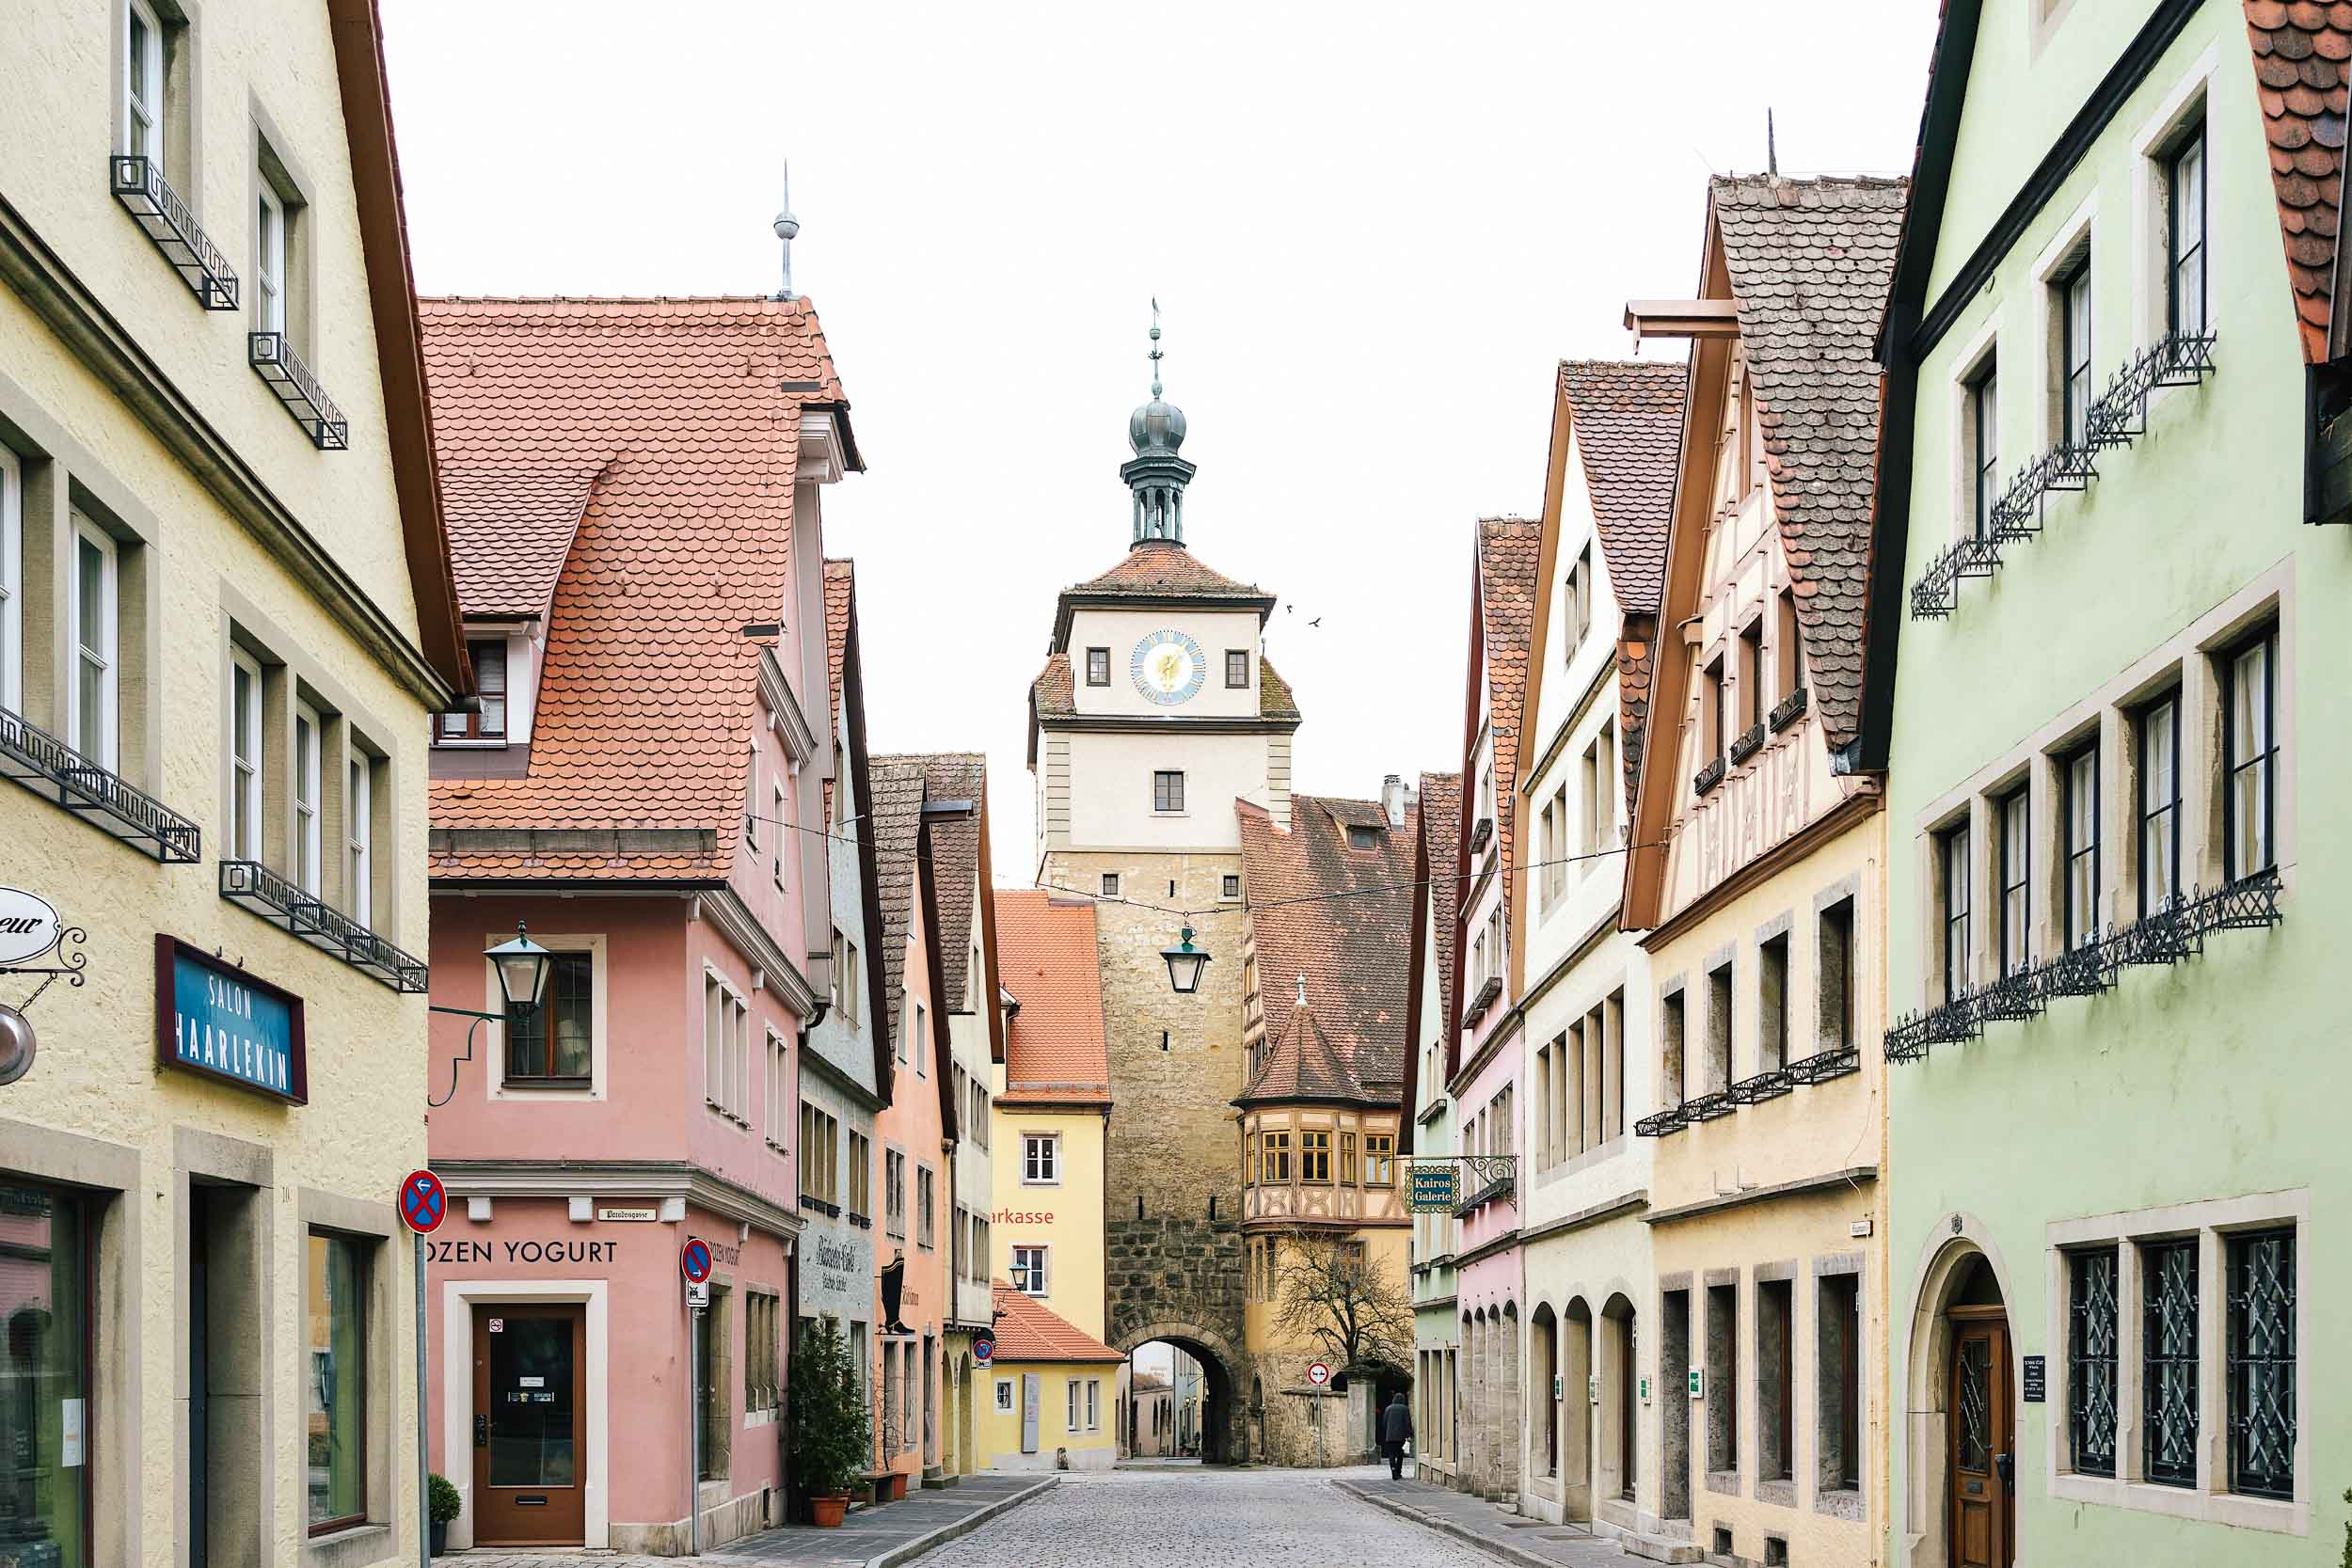 Rothenburg is a well preserved medieval town in Germany